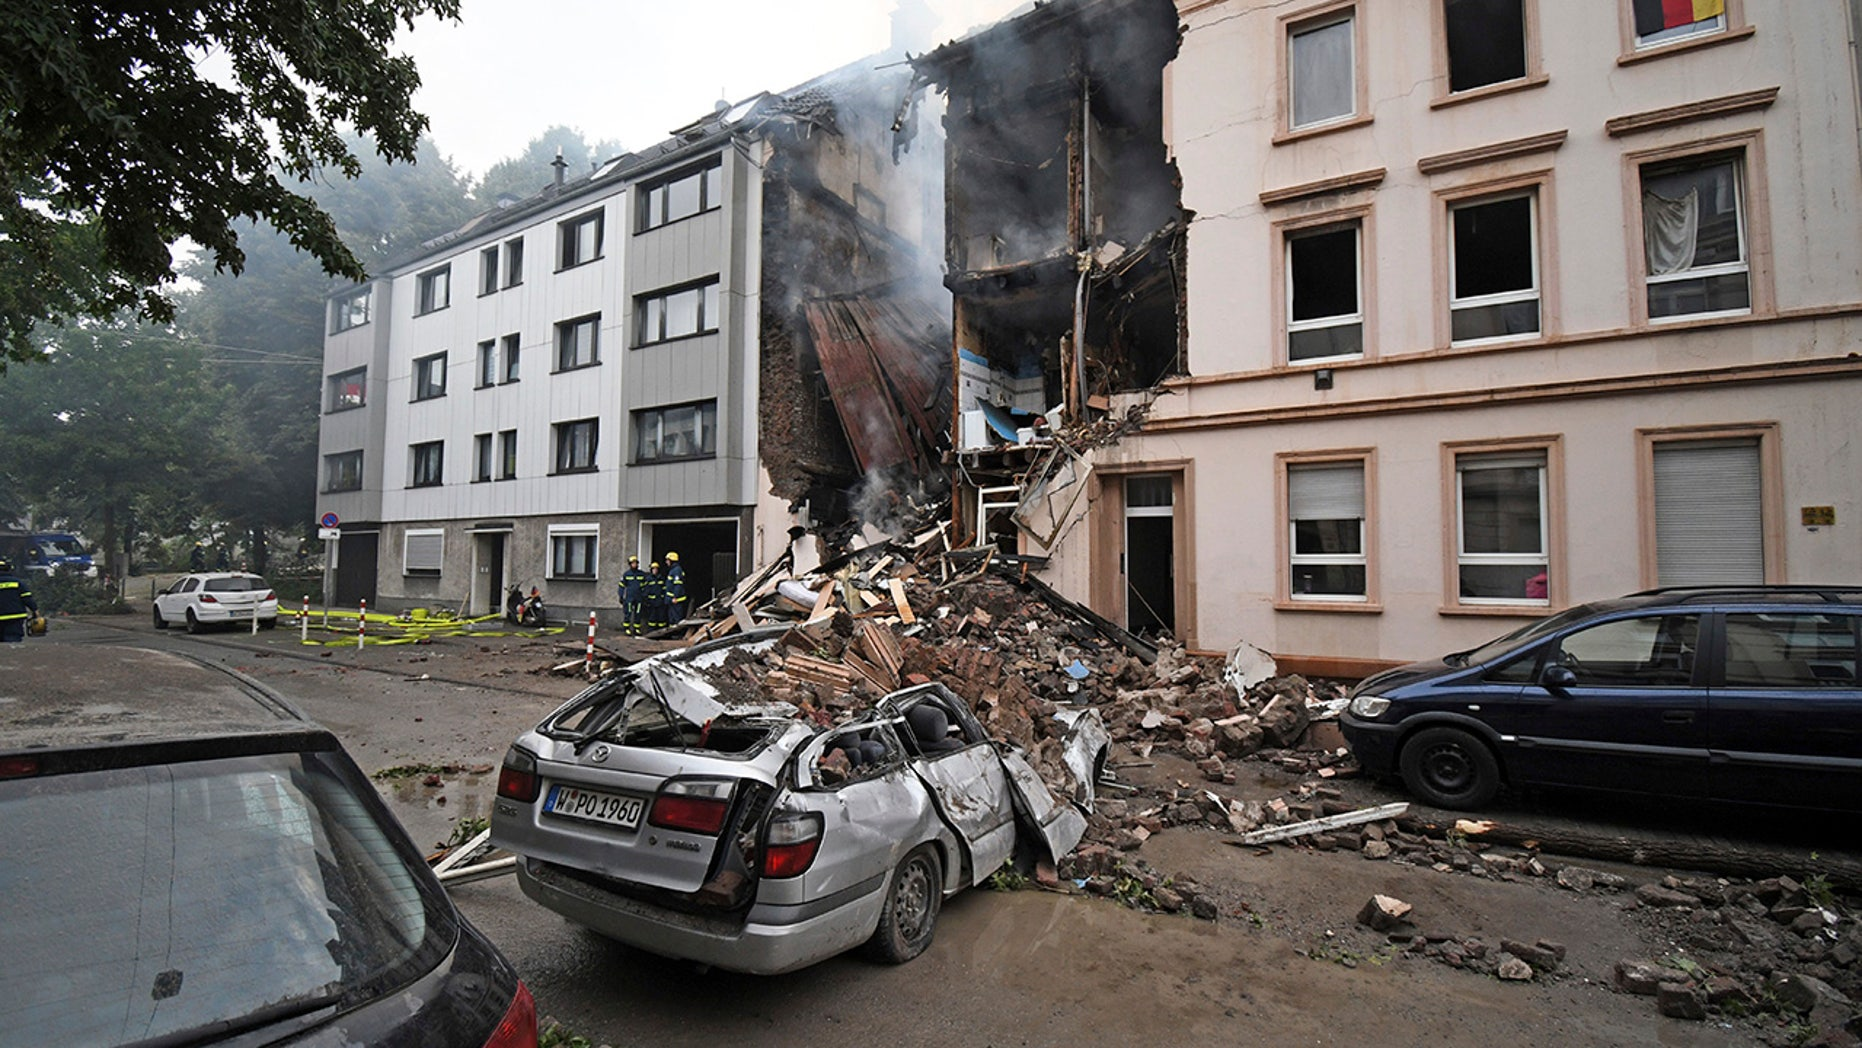 German police say at least 25 people were injured when an explosion destroyed a car and a house in Wuppertal, Germany, June 24, 2018.